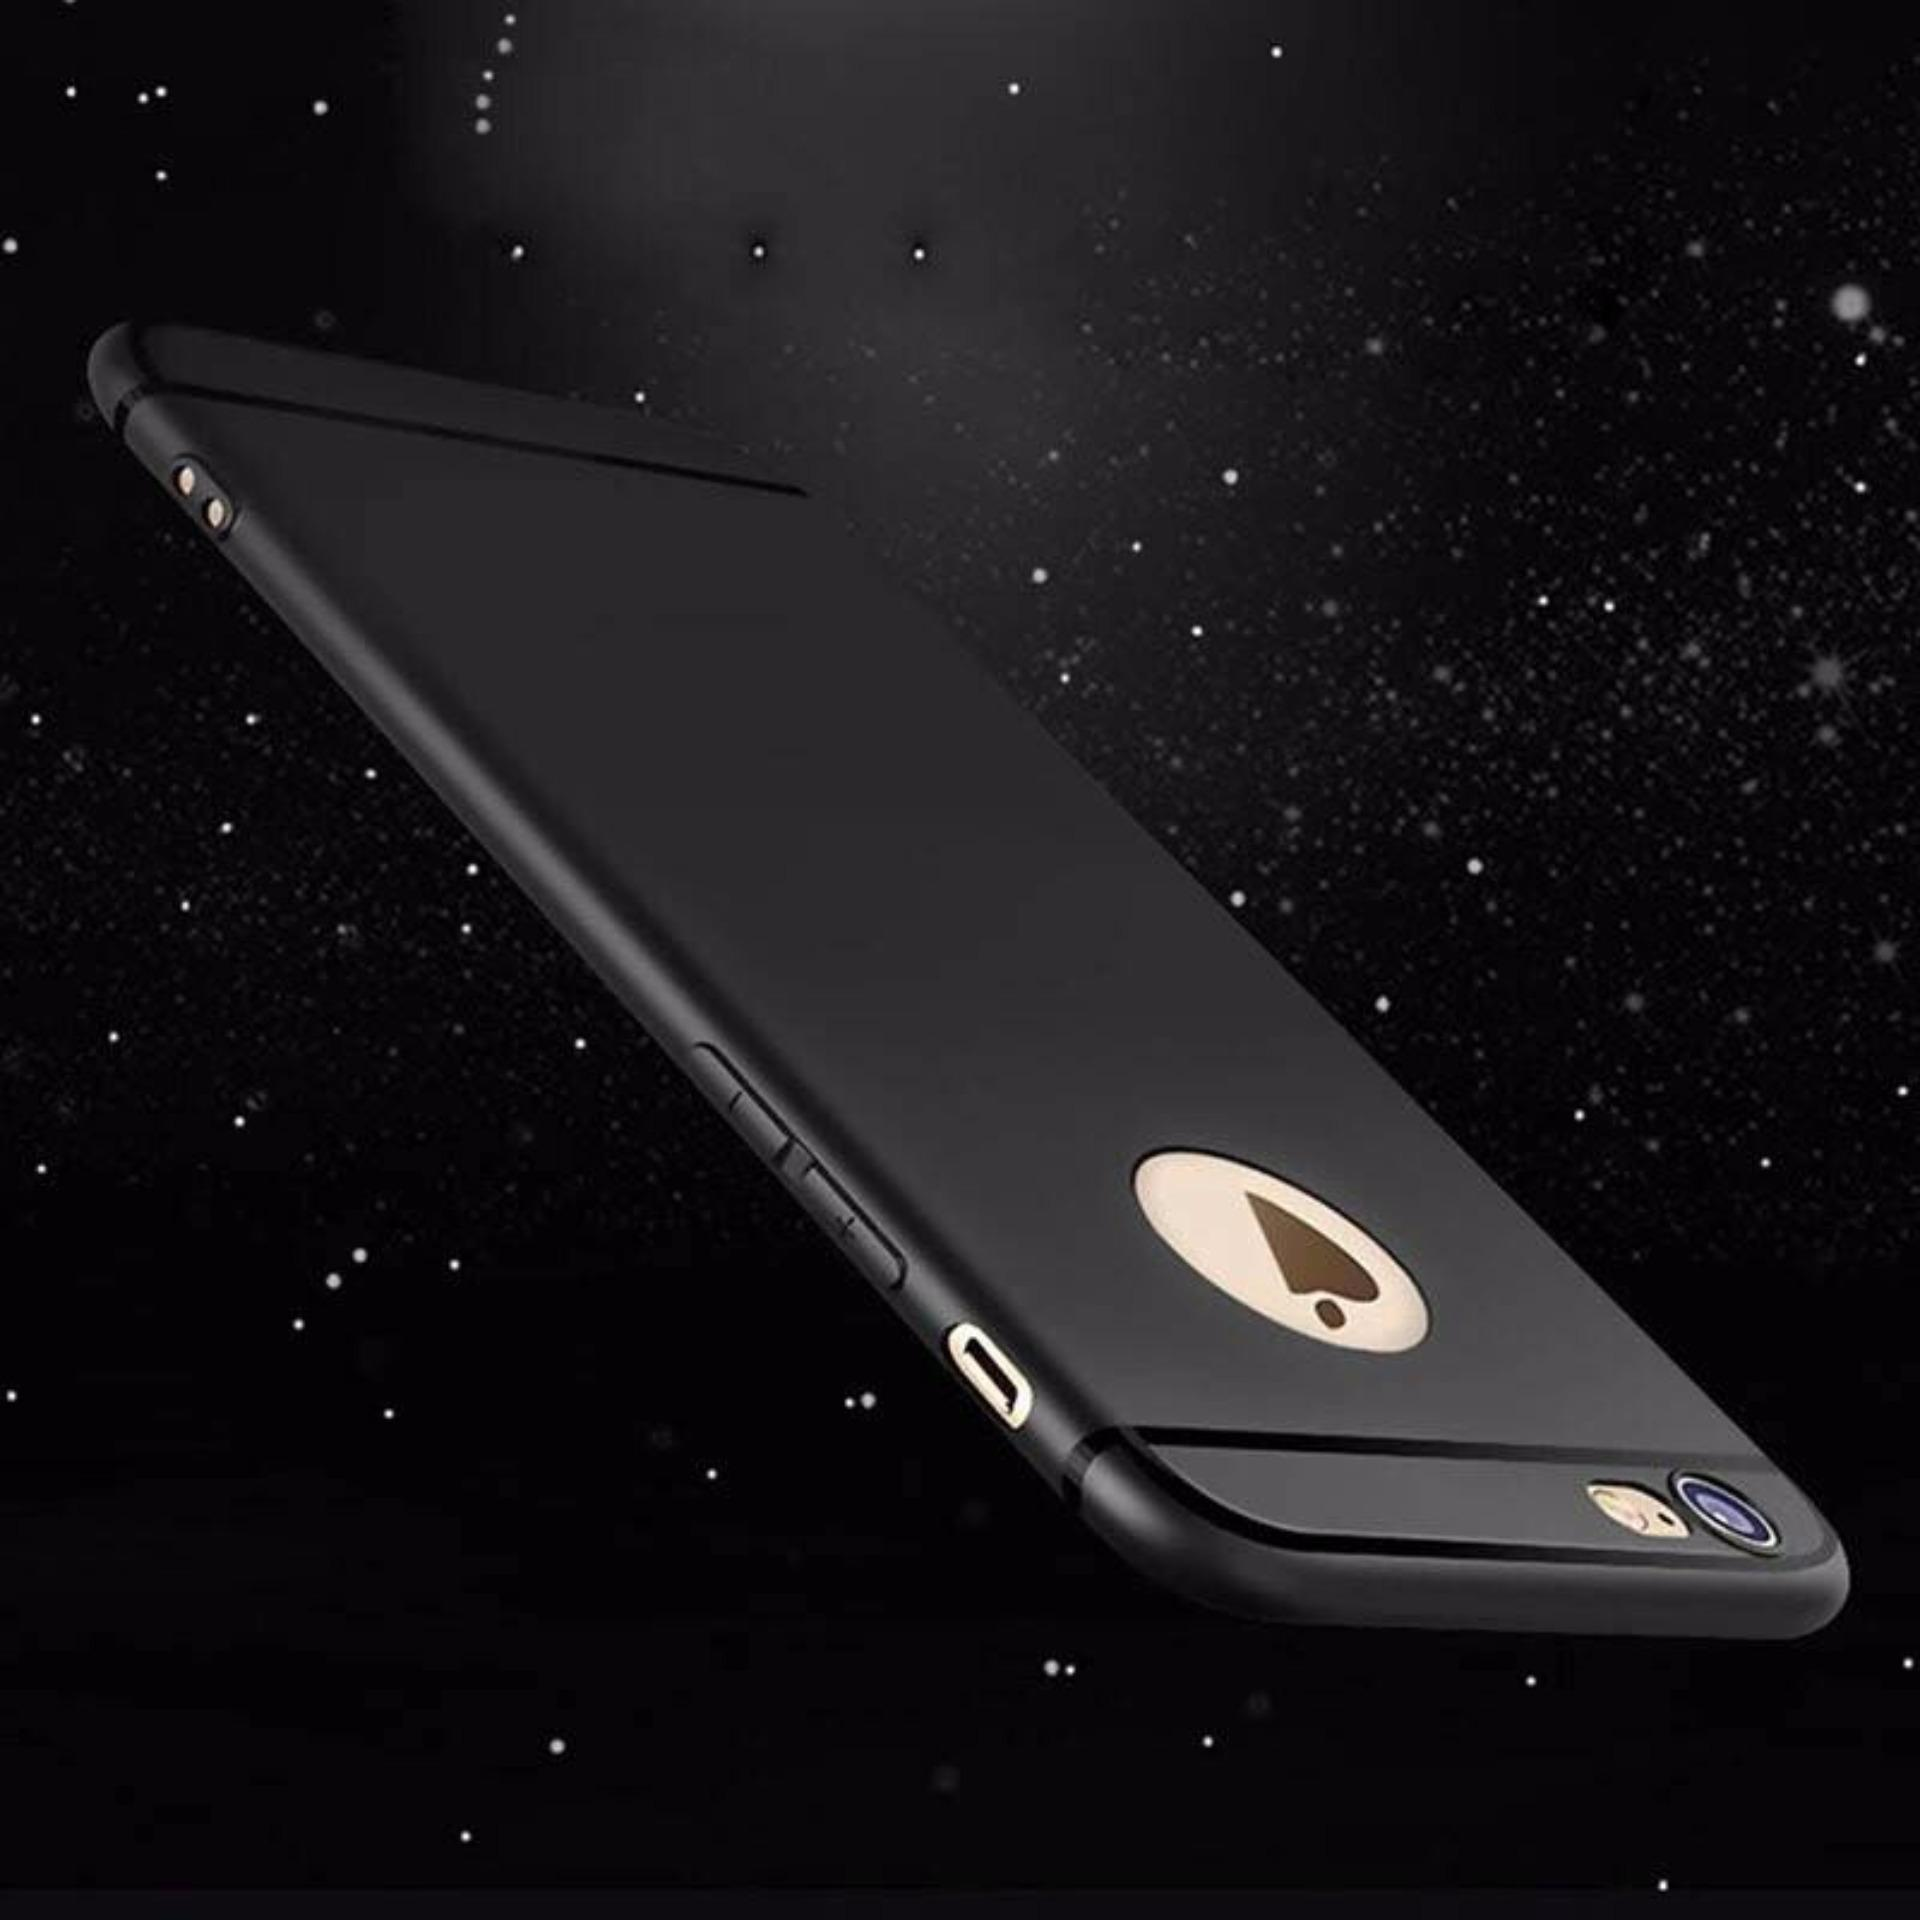 Toko Softshell Ultra Slim Silicone Soft Tpu Back Cover Ultrathin For Iphone 5 5S 5Se Hitam Di Dki Jakarta